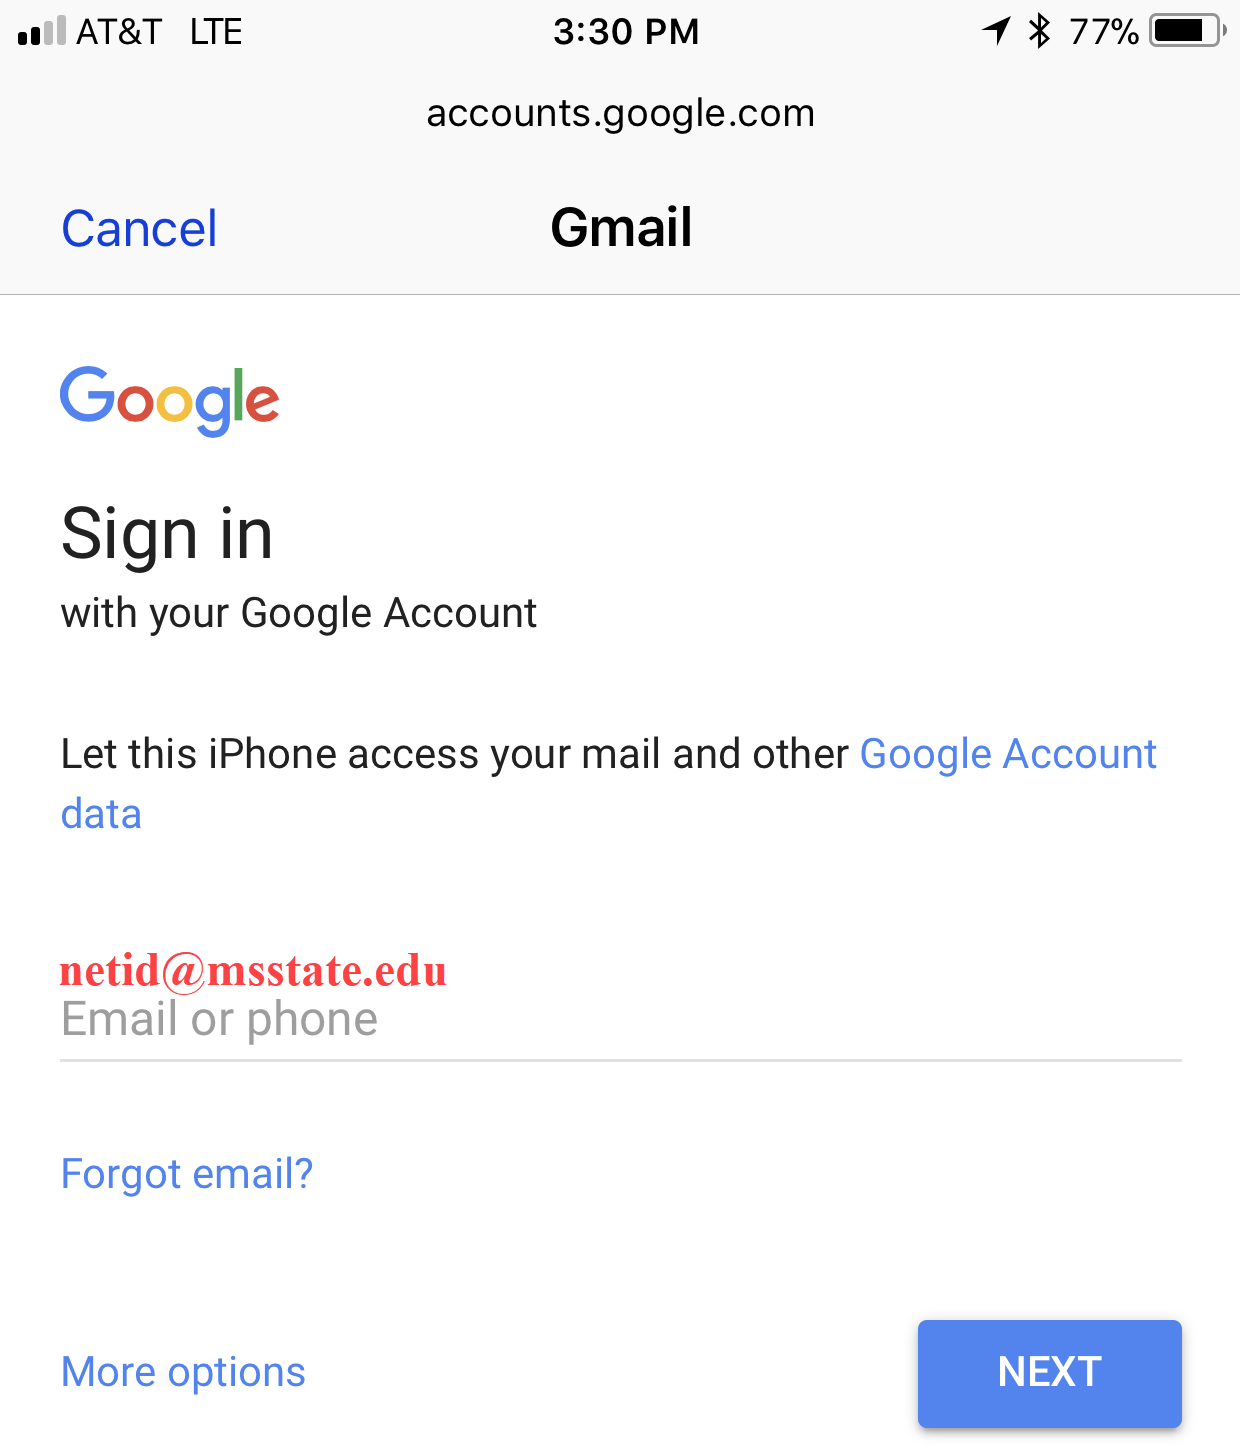 Gmail sign in information